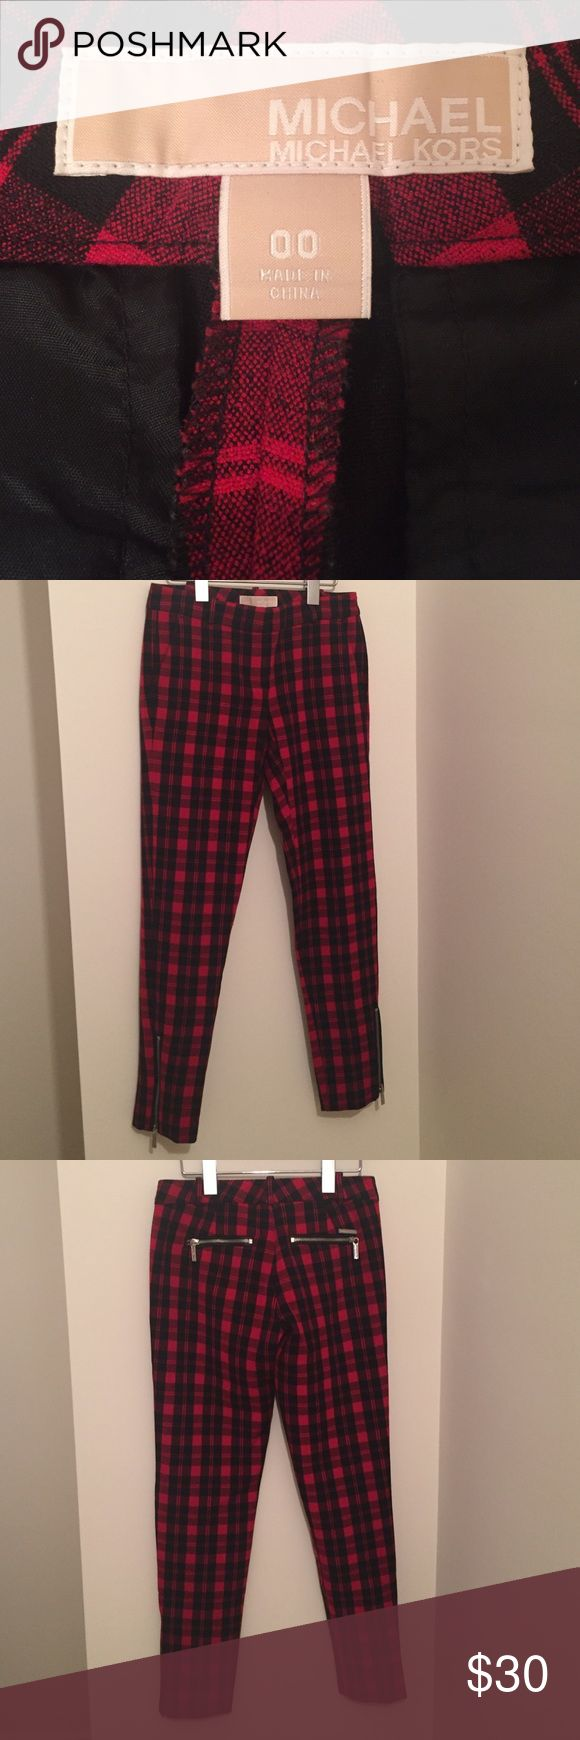 Michael Kors pants Black and red plaid Michael Kors pants! Silver zipper detail at the ankles. Super cool rocker look! In perfect condition. MICHAEL Michael Kors Pants Ankle & Cropped